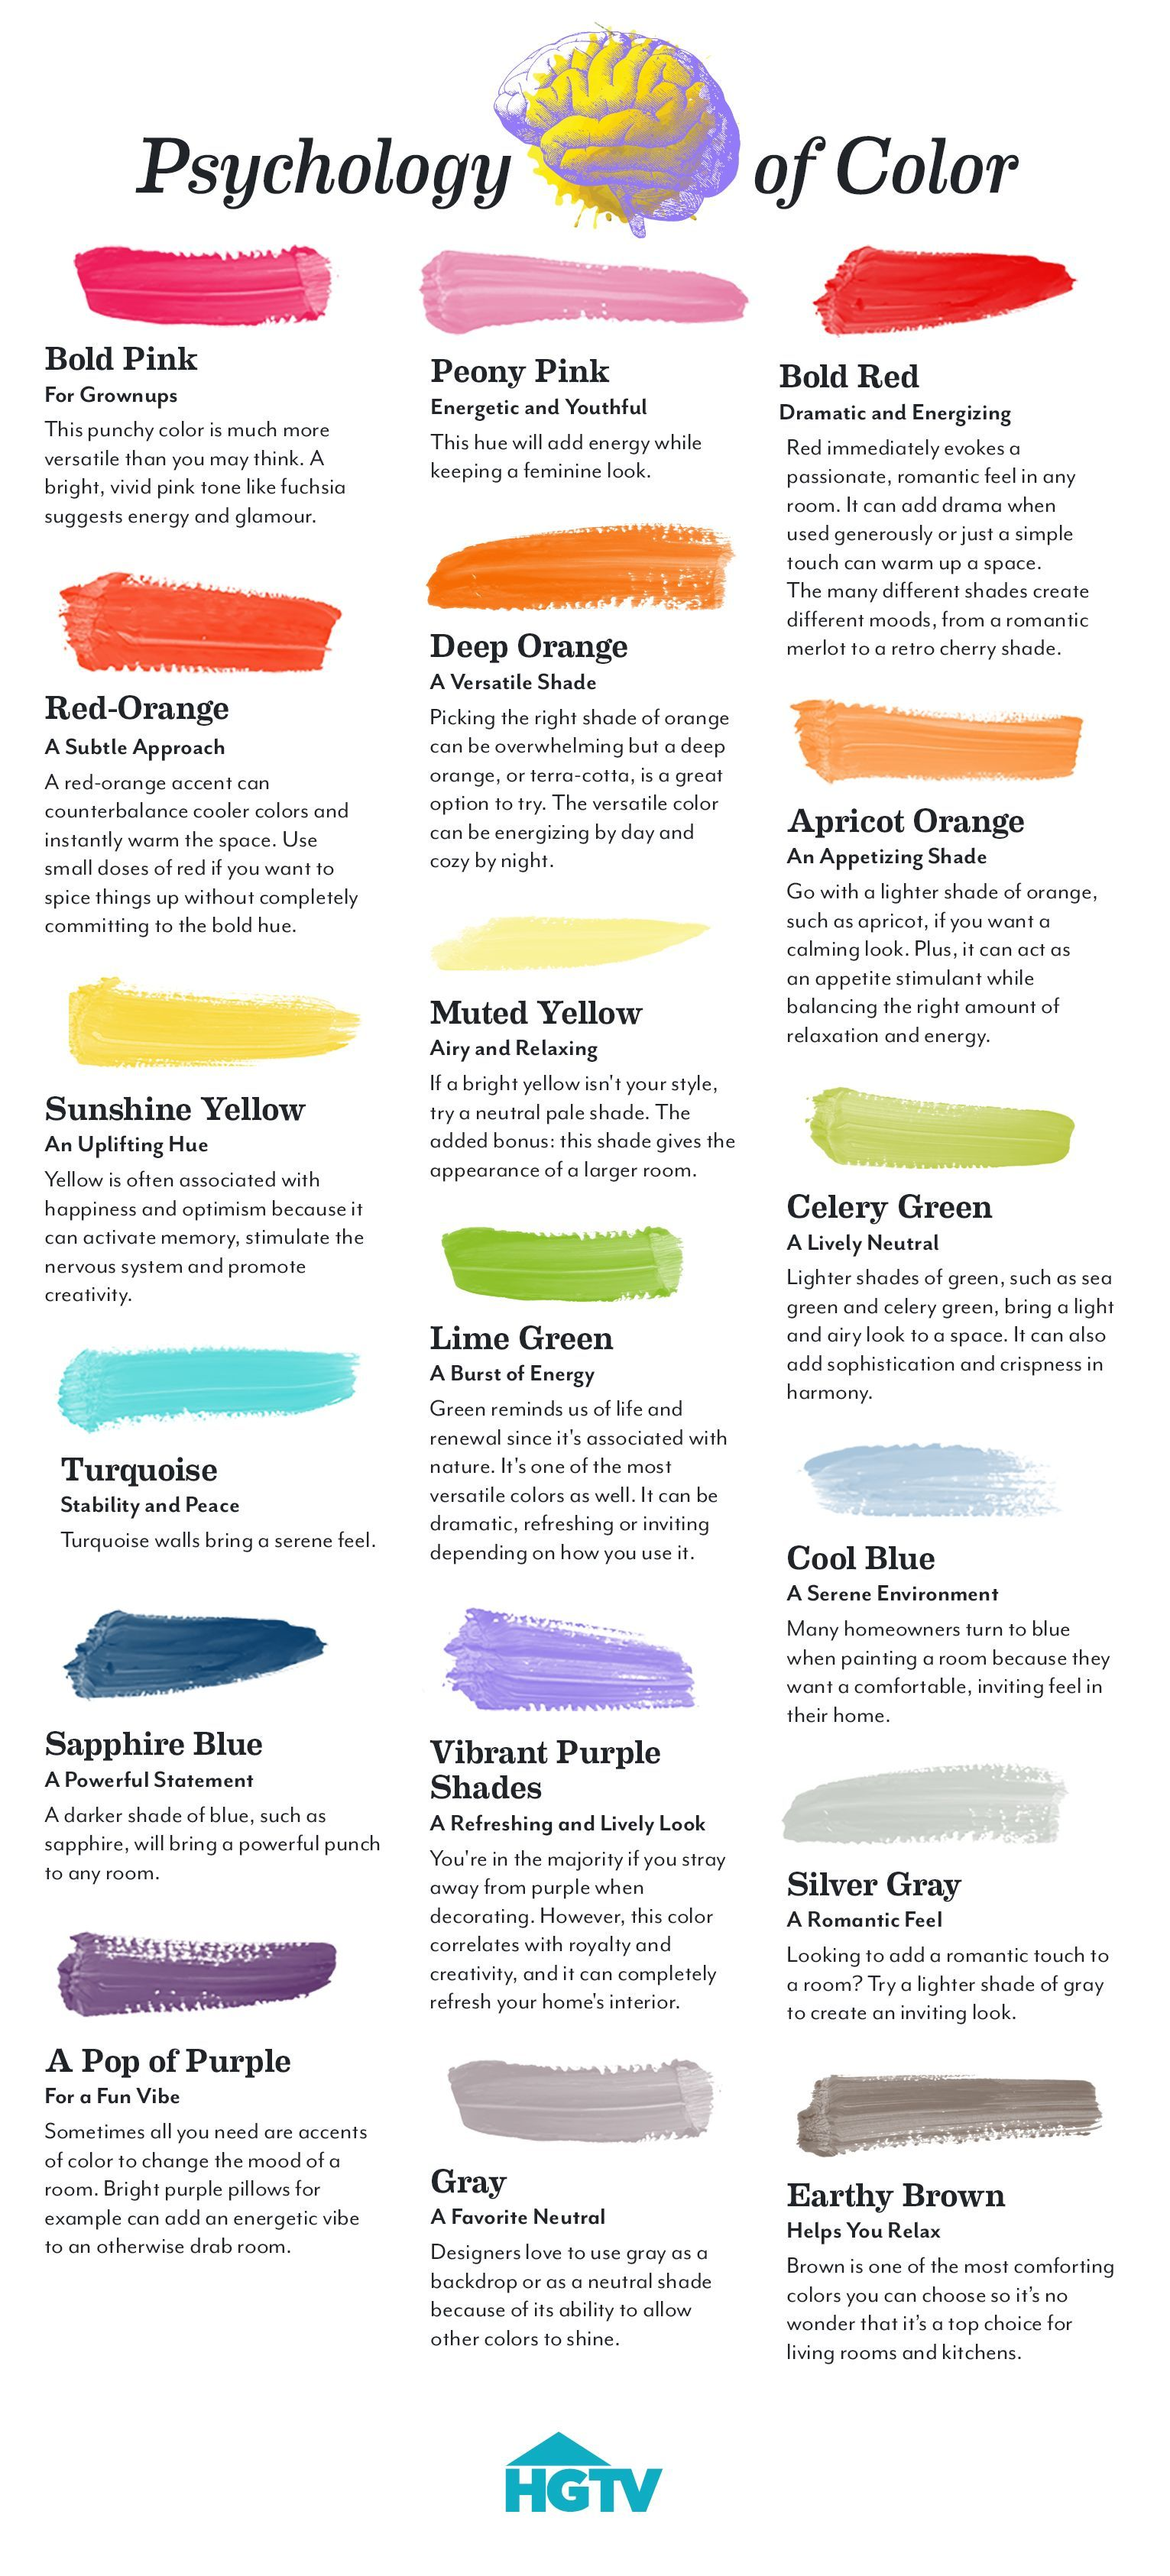 Psychology of Color: Why We Love Certain Shades Different colors can impact the way we think, what we buy and even our design choices. Find the perfect shade that fits your aesthetic with this helpful guide from HGTV.com featuring 18 popular hues. #funnykittens